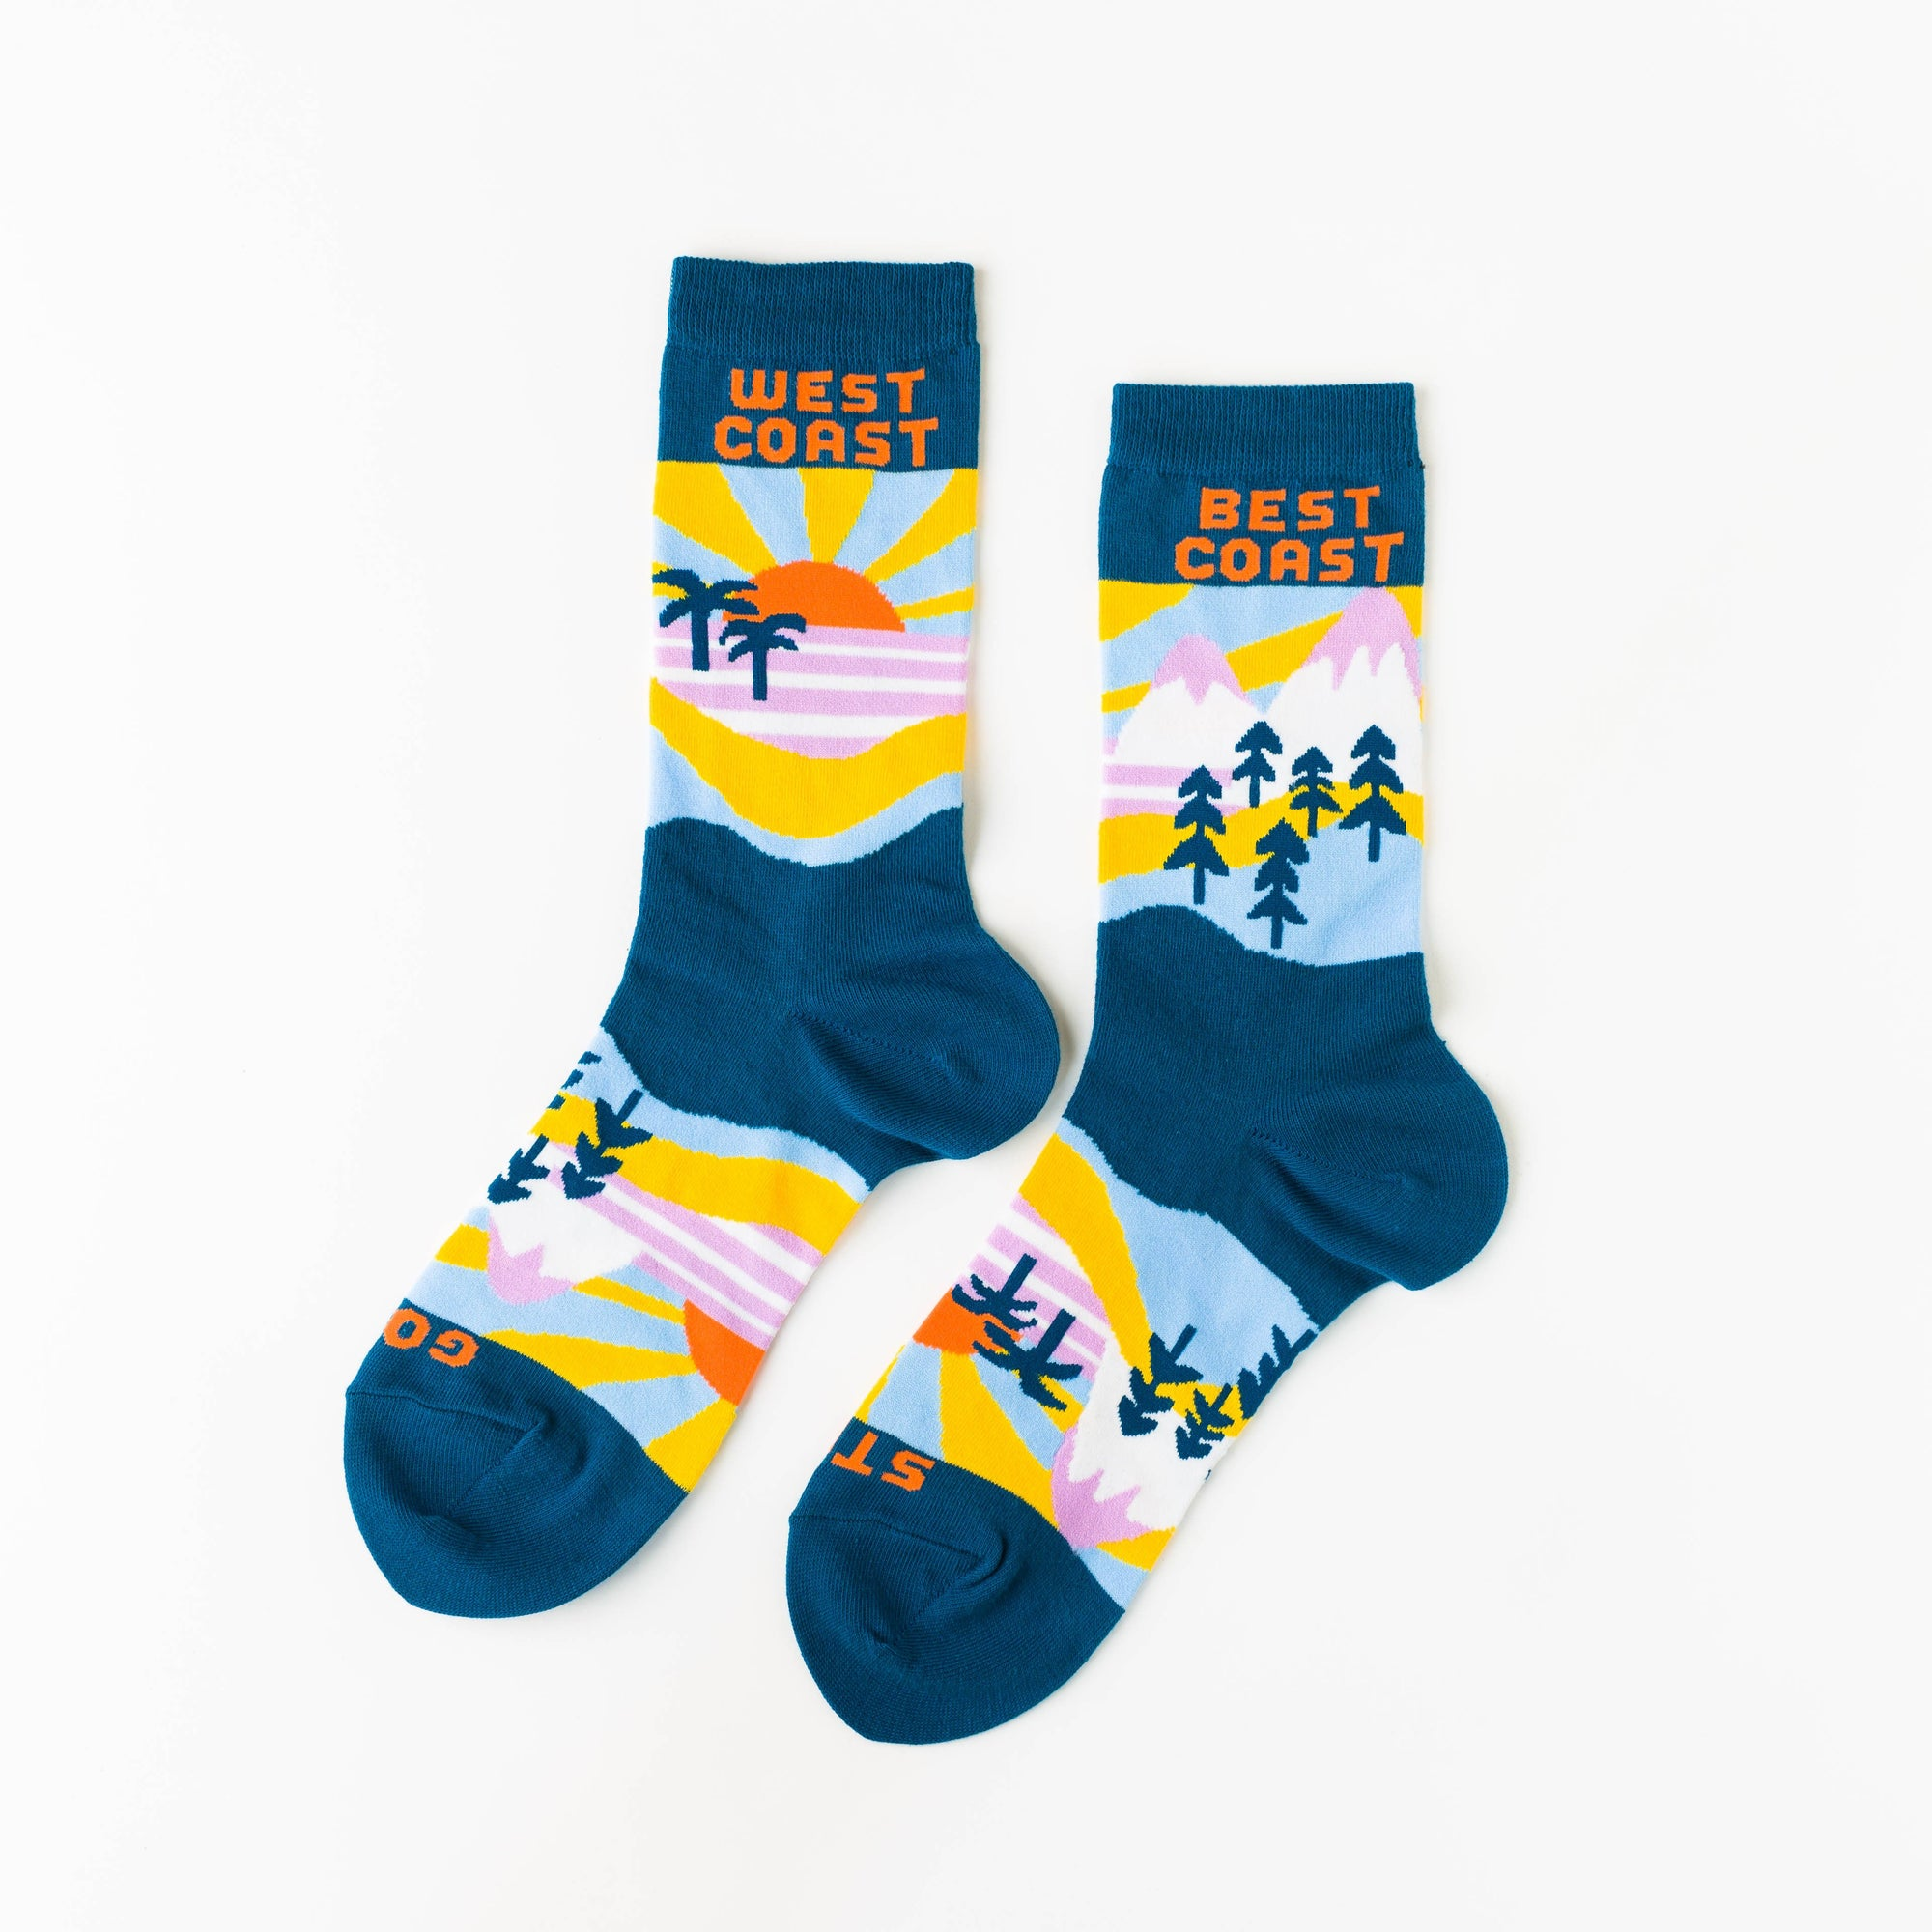 Best Coast Crew Socks - Mens